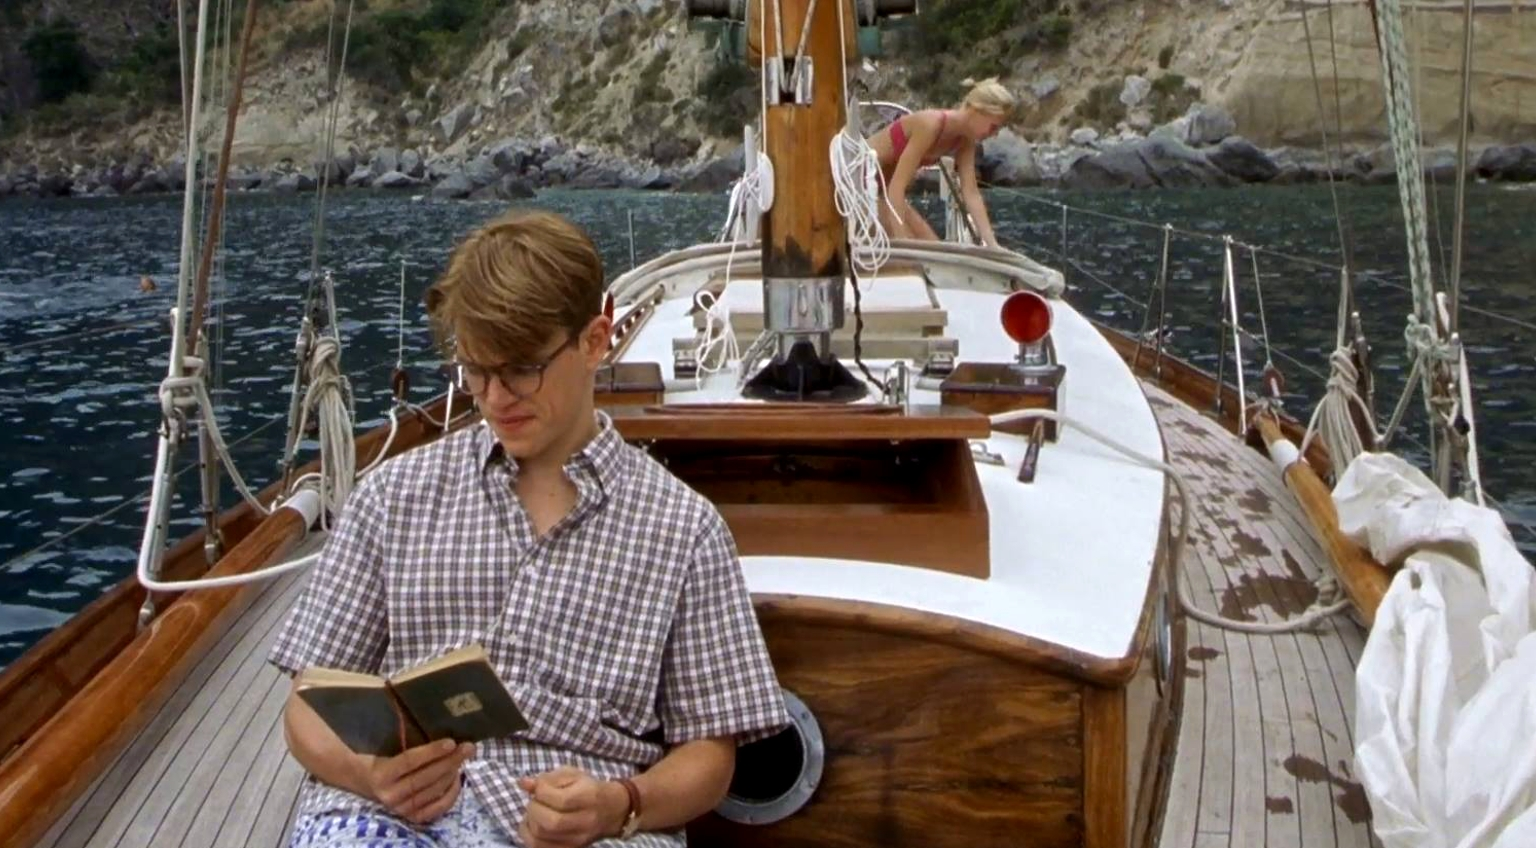 """Inspired: """"The Talented Mr. Ripley"""" Film Style 